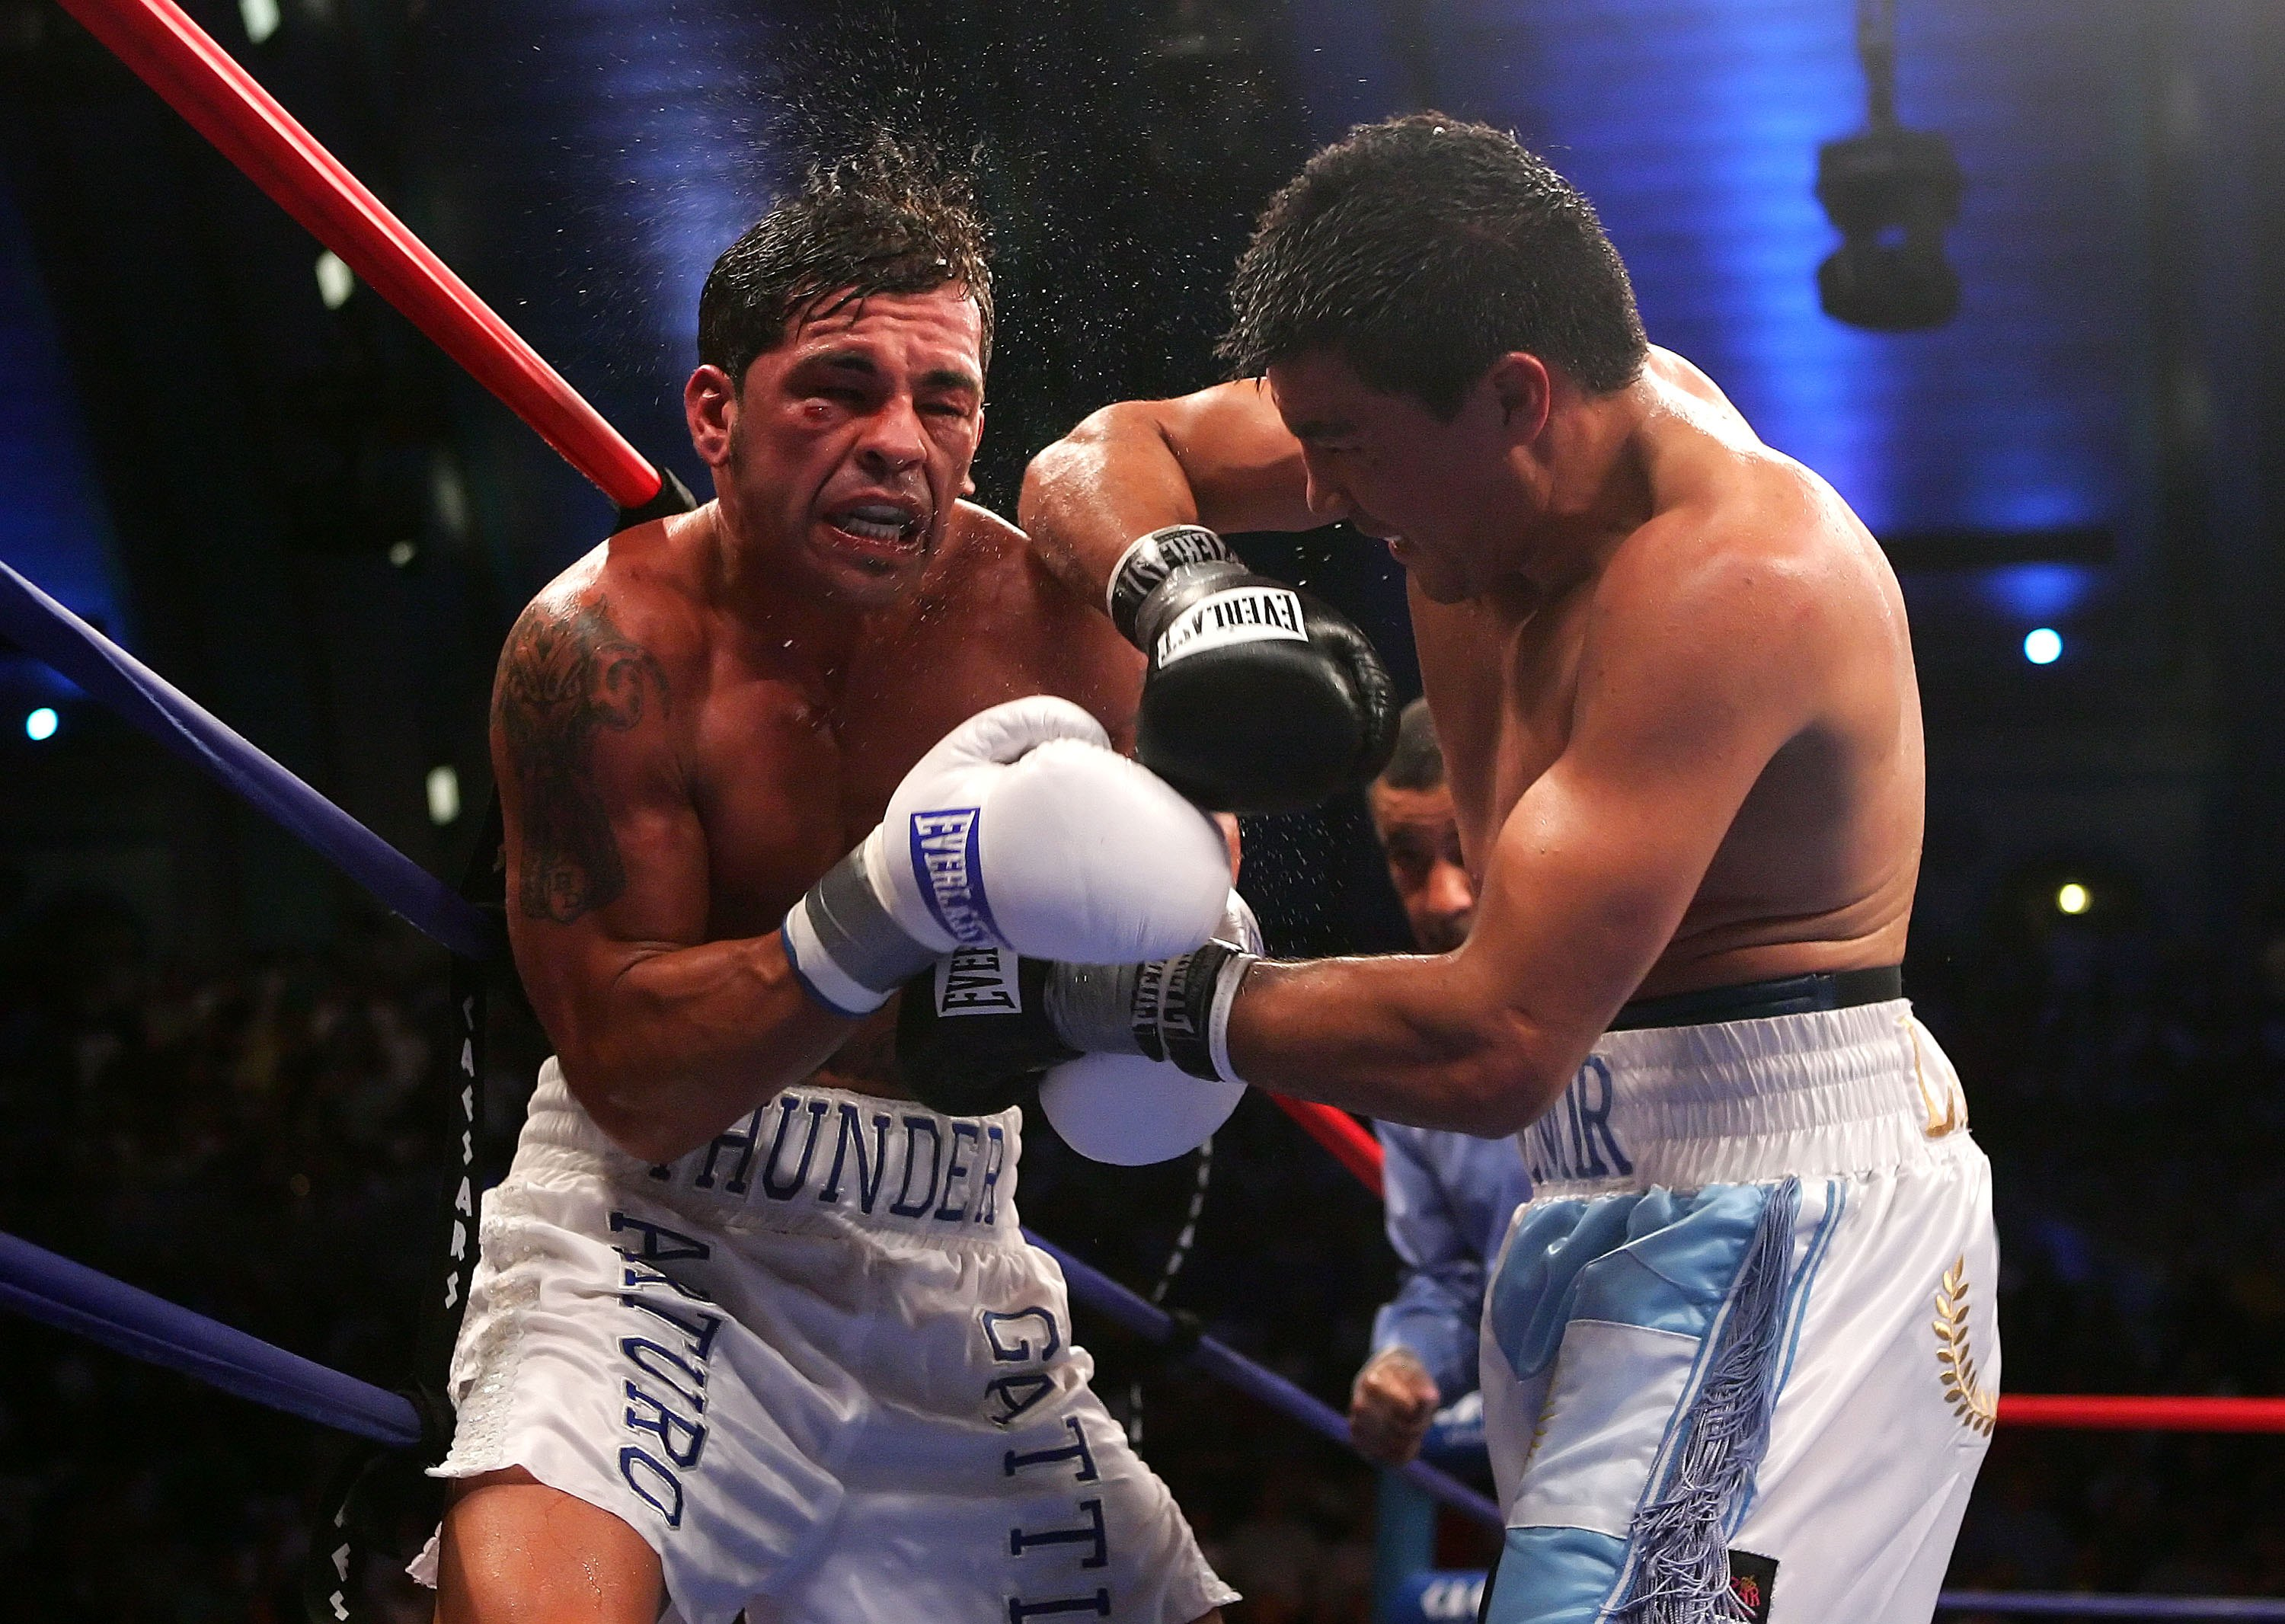 ATLANTIC CITY, NJ - JULY 22:  Carlos Baldomir lands an elbow against Arturo Gatti during their WBC/IBA Welterweight Championship fight at Boardwalk Hall July 22, 2006 in Atlantic City, New Jersey.  (Photo by Al Bello/Getty Images)